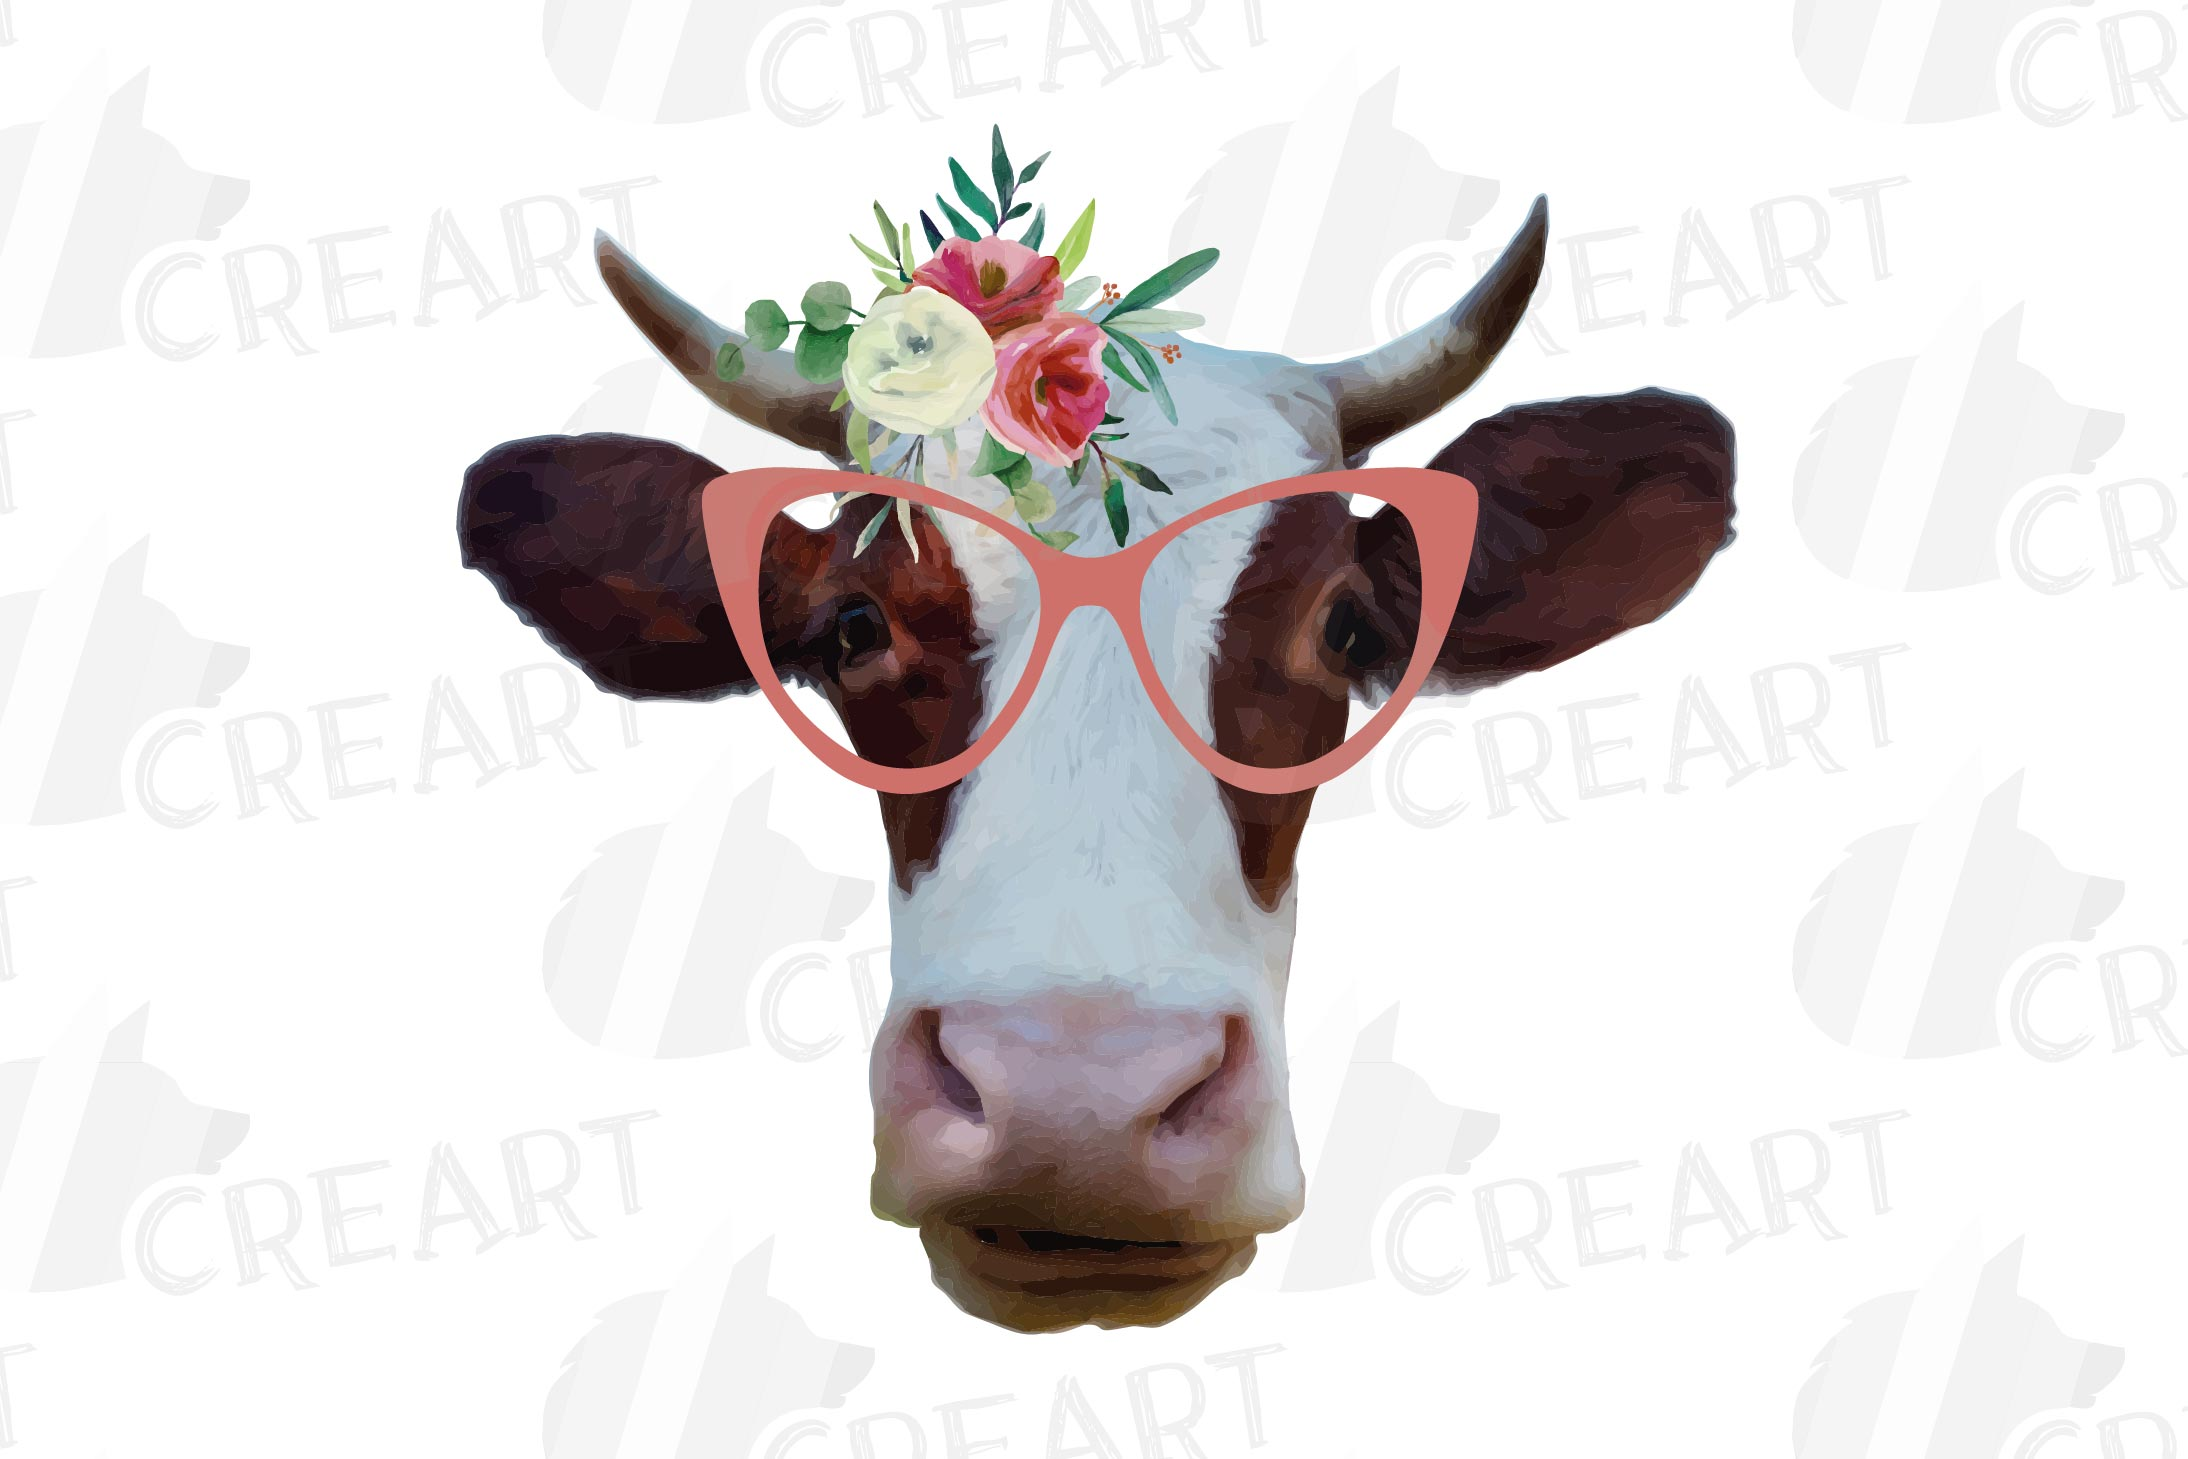 Cows with floral crown clip art. Not today heifer graphic example image 4